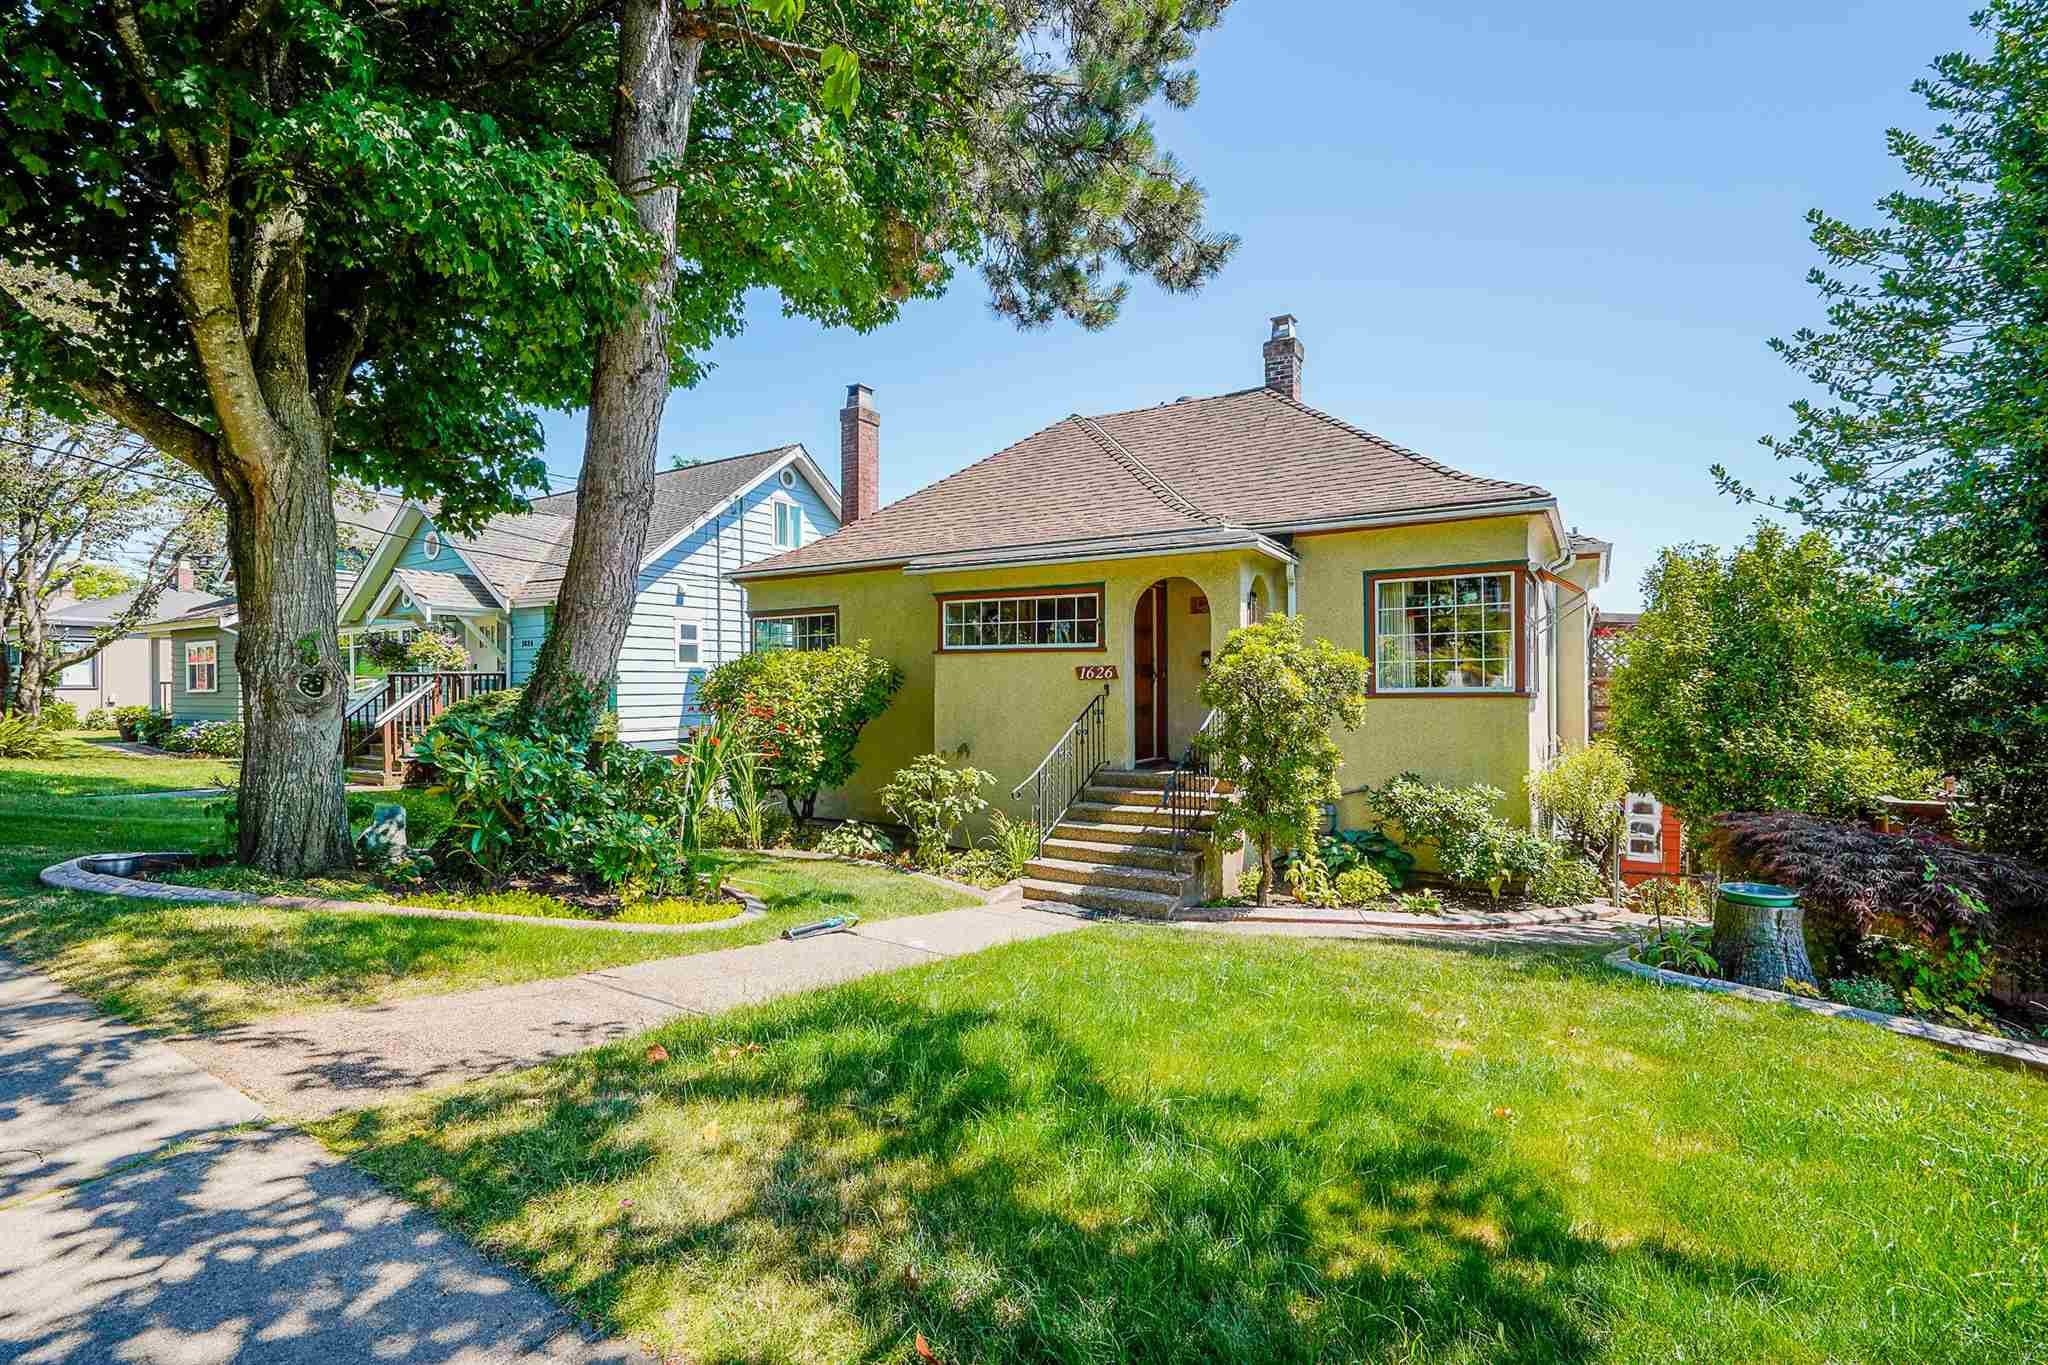 """Main Photo: 1626 SEVENTH Avenue in New Westminster: West End NW House for sale in """"West End"""" : MLS®# R2603871"""